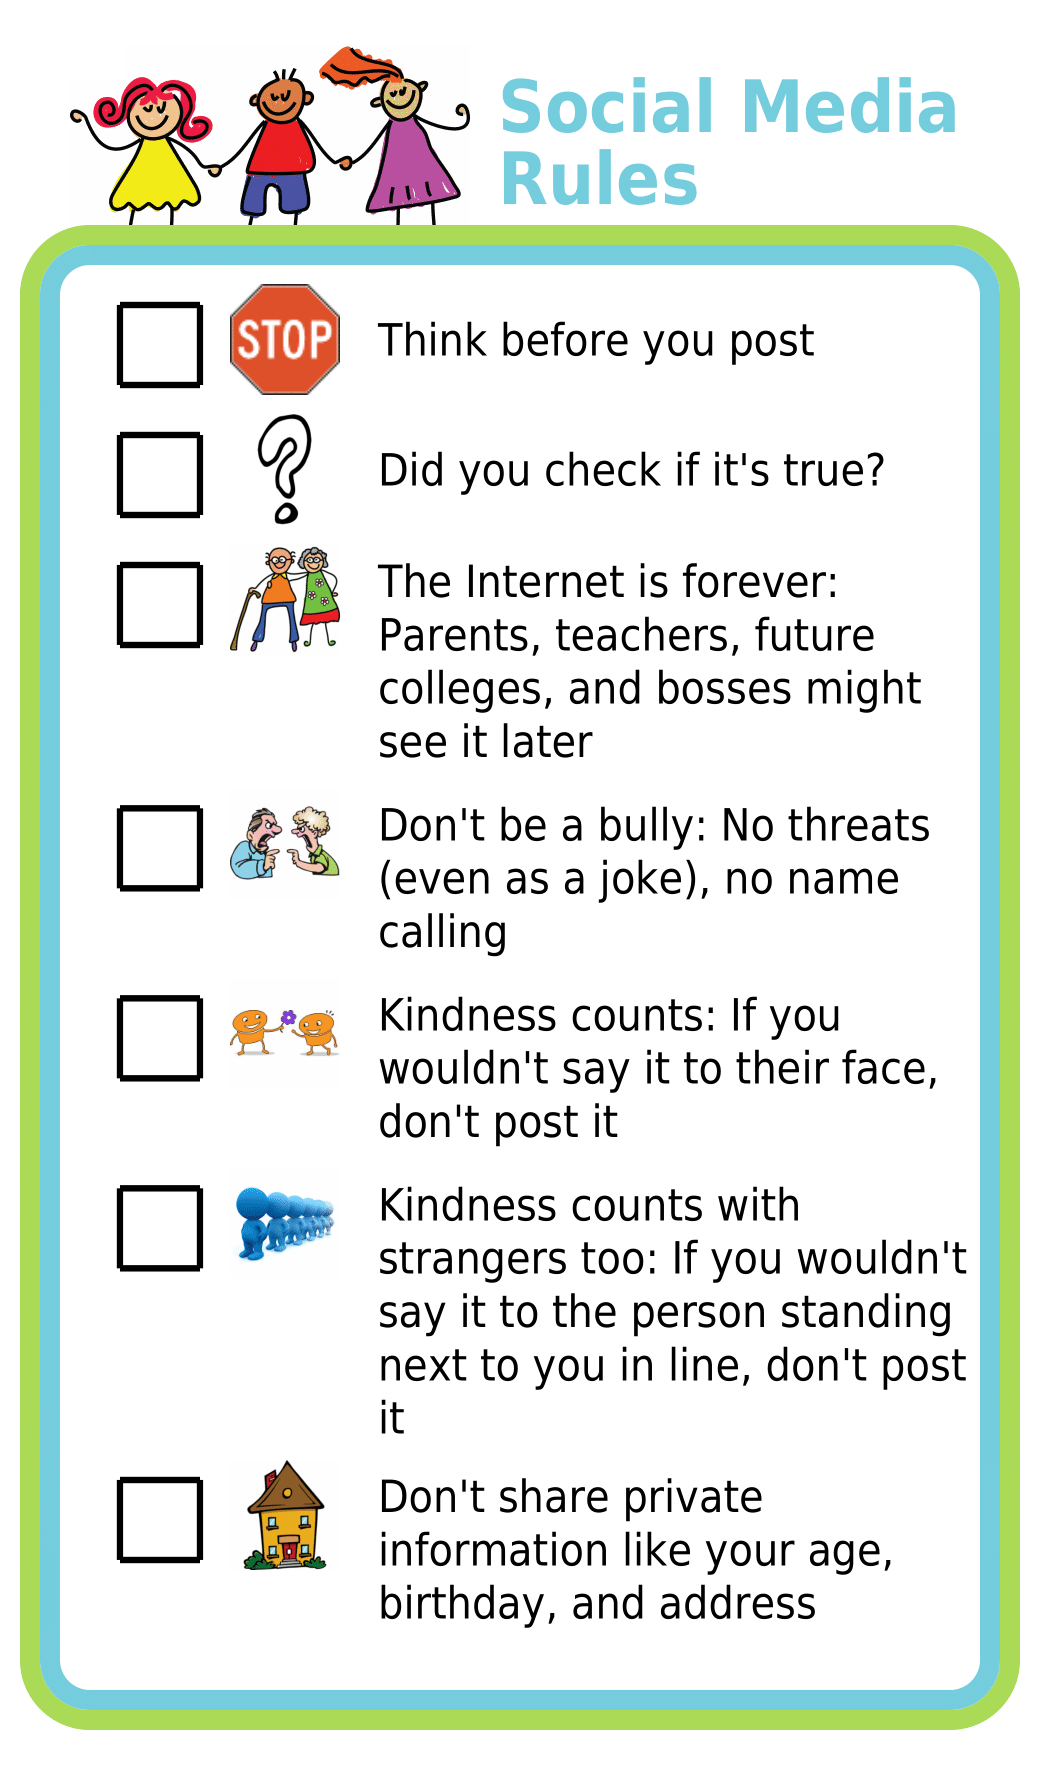 Picture checklist showing social media rules